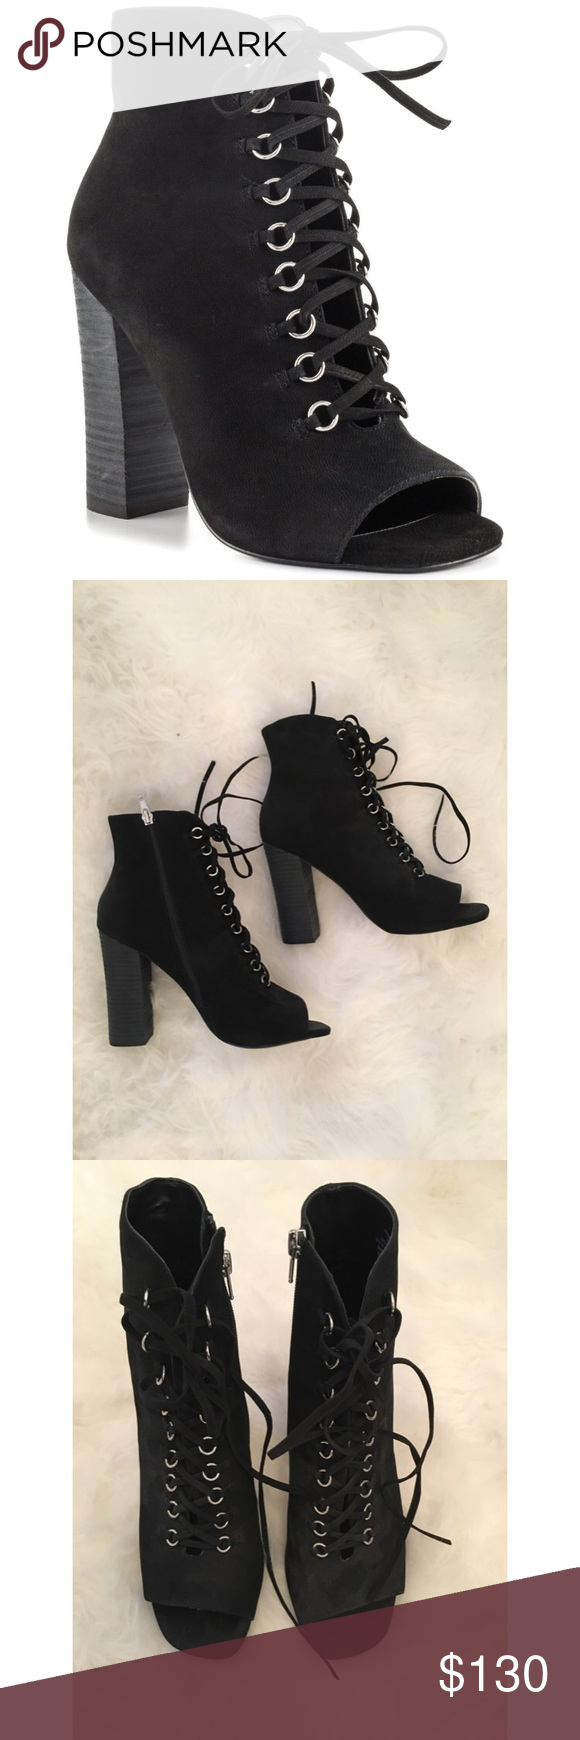 Steve Madden Freemee Lace Up Booties Never worn, completely new! Sold out online Steve Madden Shoes Ankle Boots & Booties